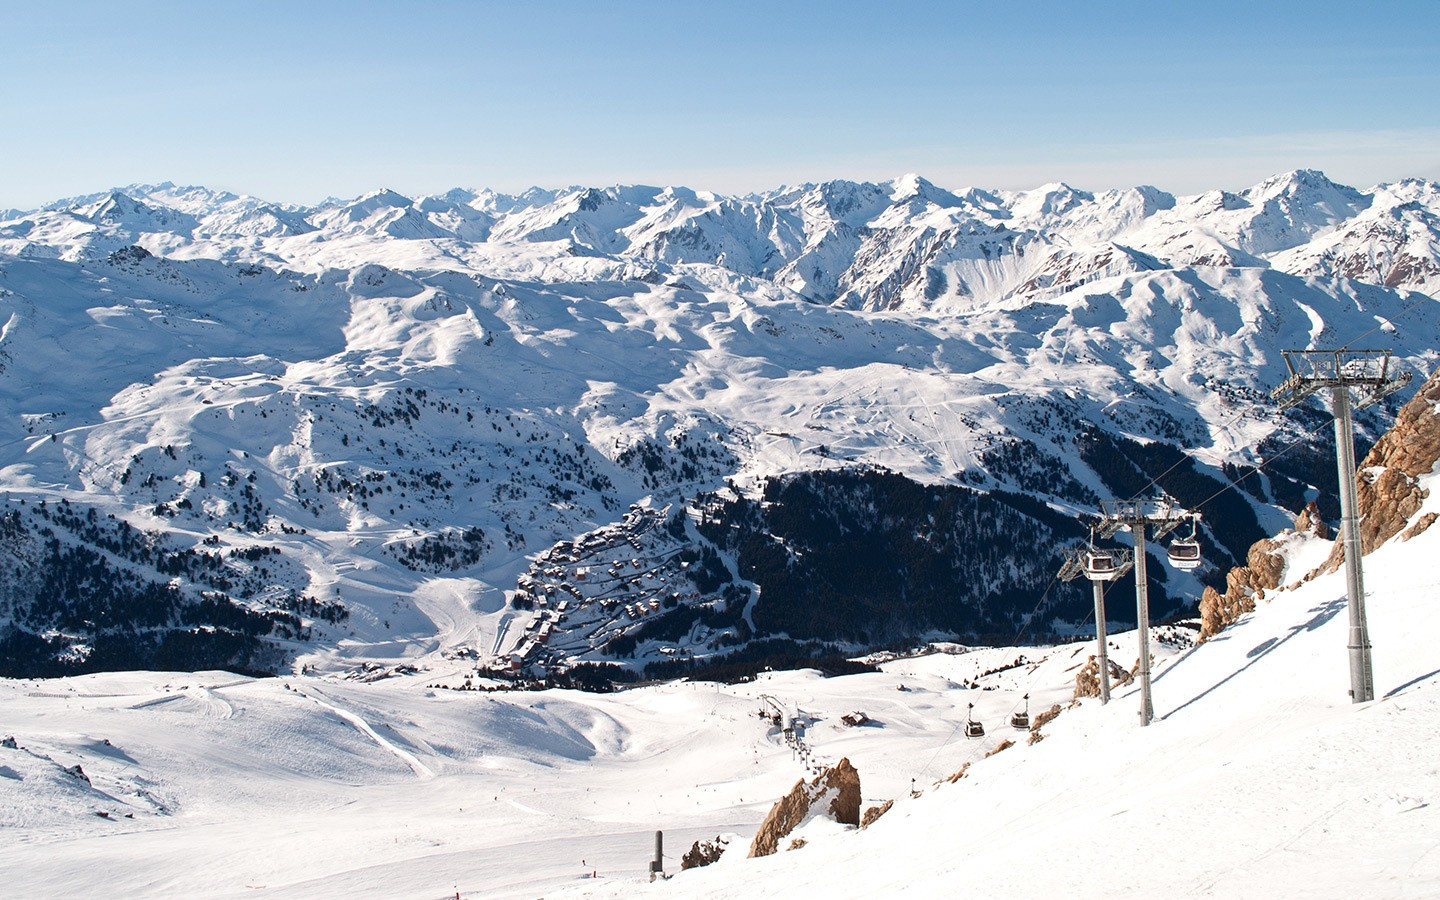 Views from the top of the Saulire lift